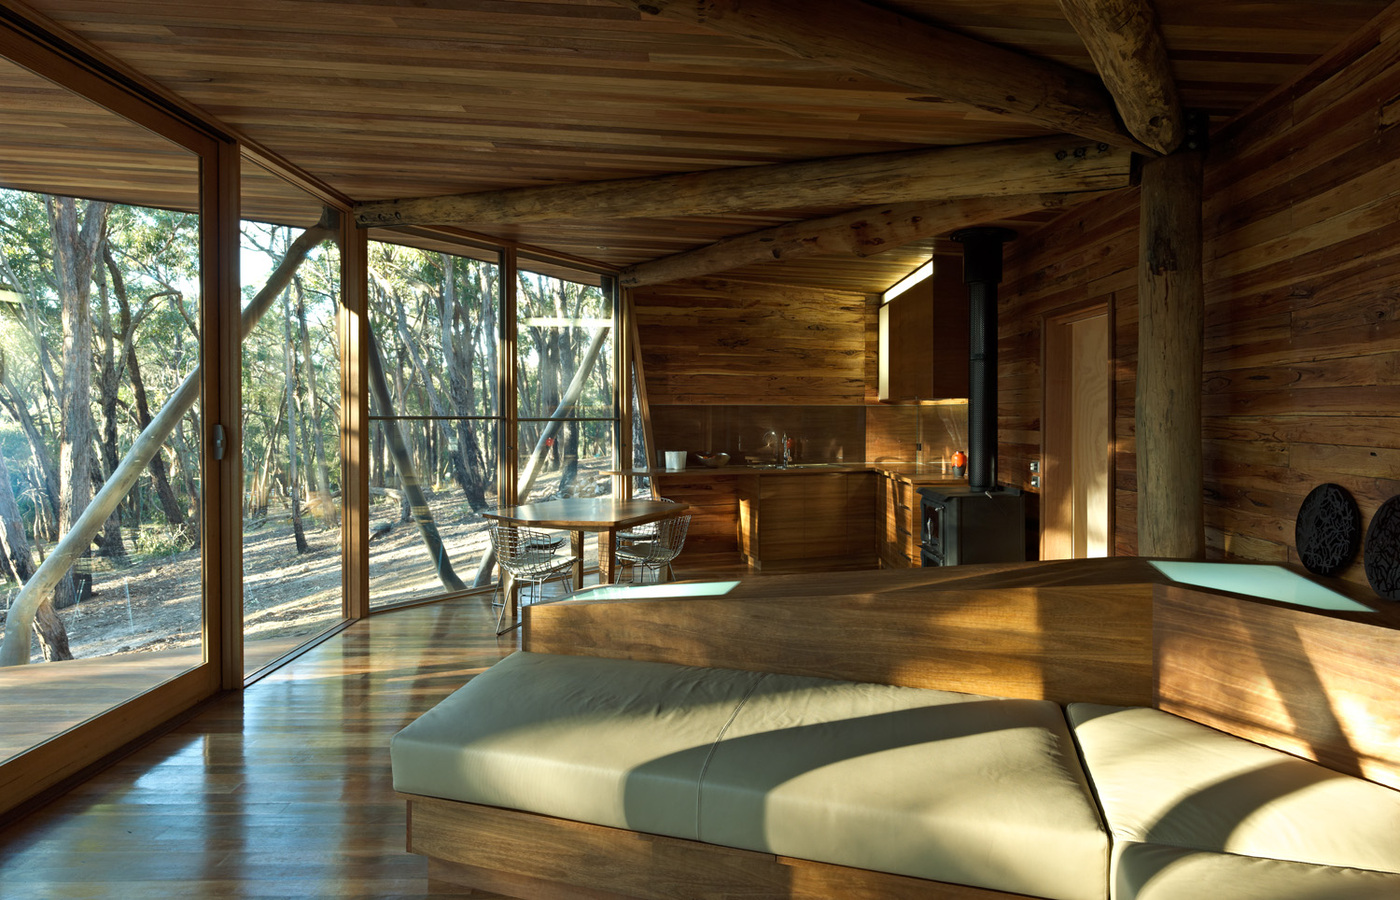 wood ceiling, floor and furniture, cabin interior